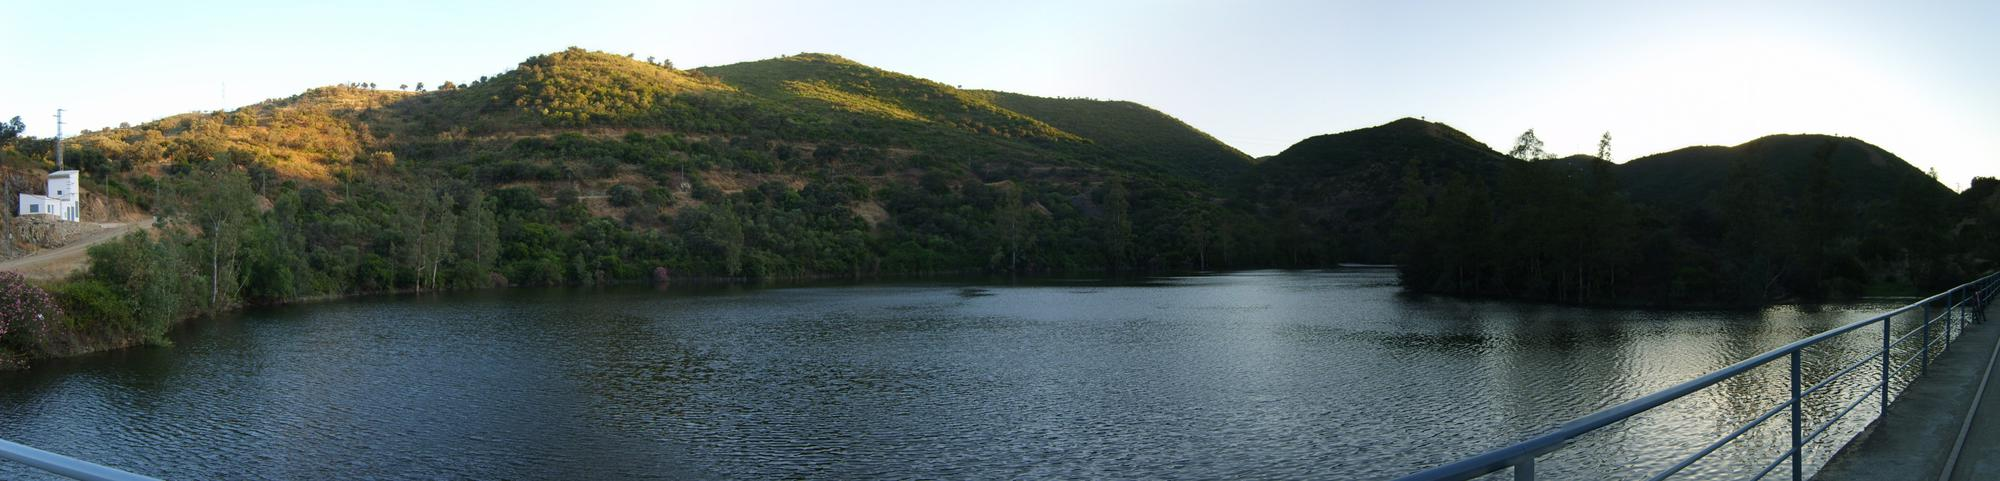 pano-embalse-guillena-1.jpg